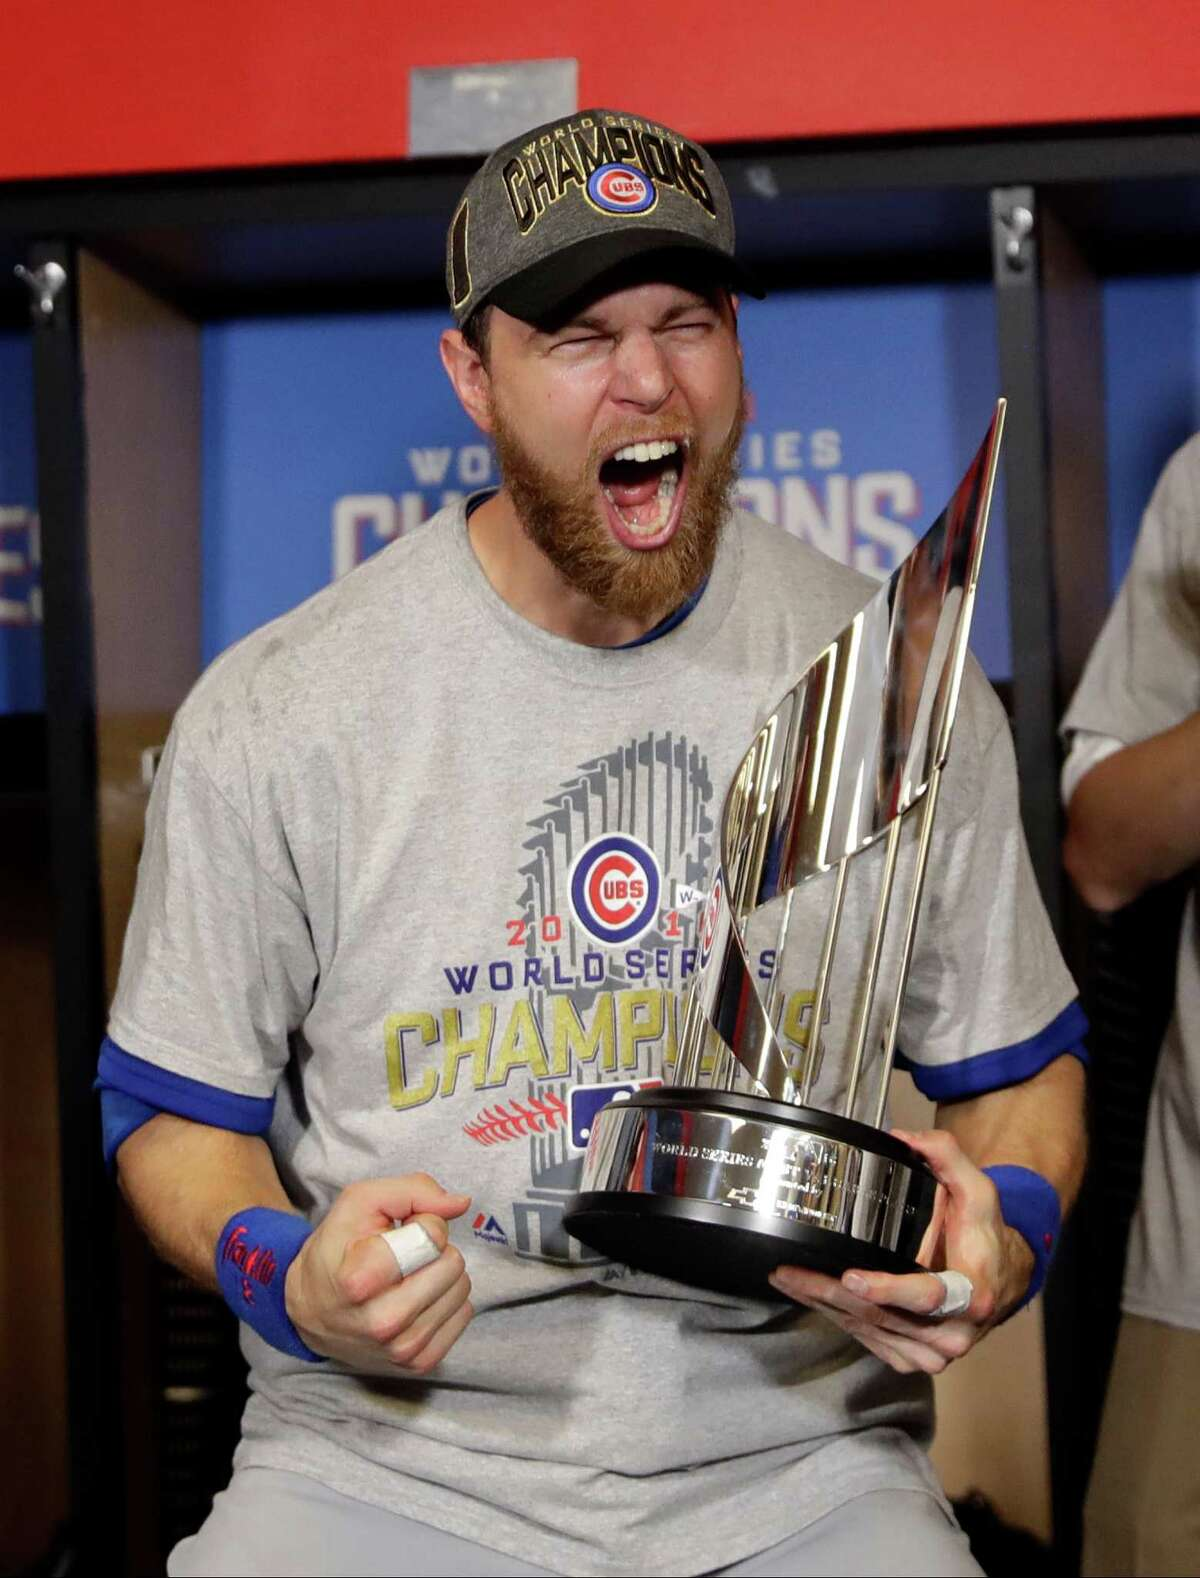 Chicago Cubs' Ben Zobrist celebrates with his MVP trophy after Game 7 of the Major League Baseball World Series against the Cleveland Indians Thursday, Nov. 3, 2016, in Cleveland. The Cubs won 8-7 in 10 innings to win the series 4-3. (AP Photo/David J. Phillip)